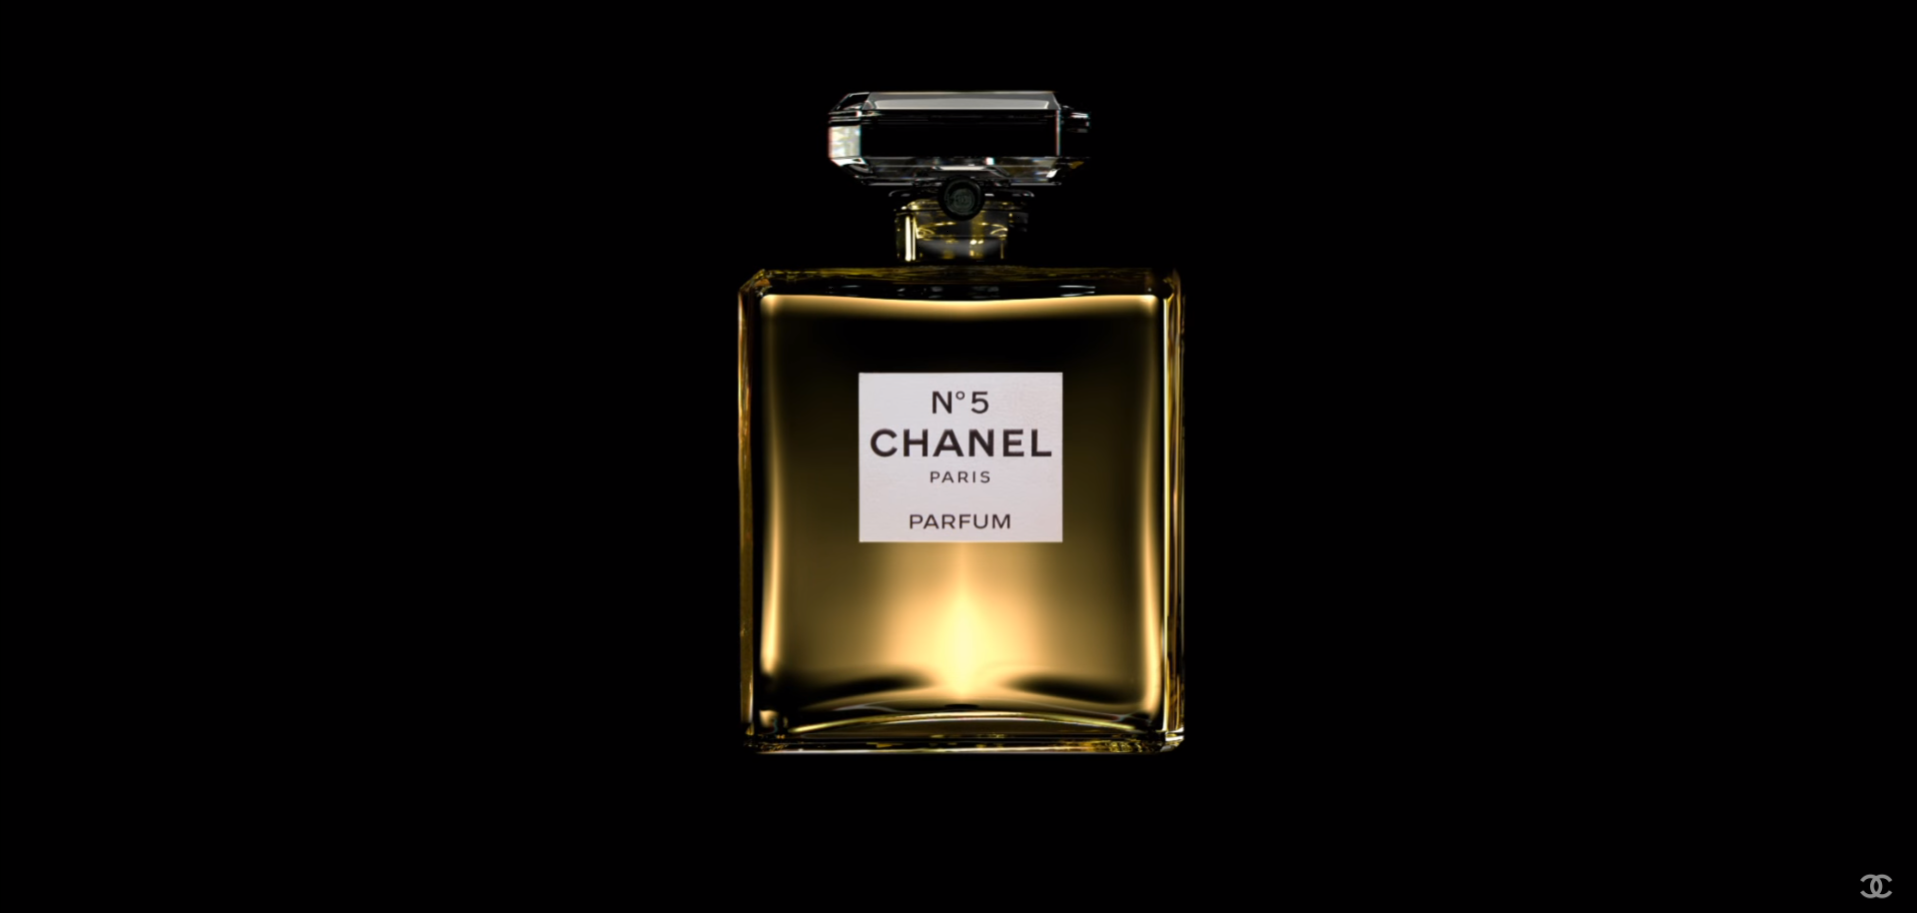 chanel n 5 histoire d 39 un parfum de l gende blog parfumdo. Black Bedroom Furniture Sets. Home Design Ideas